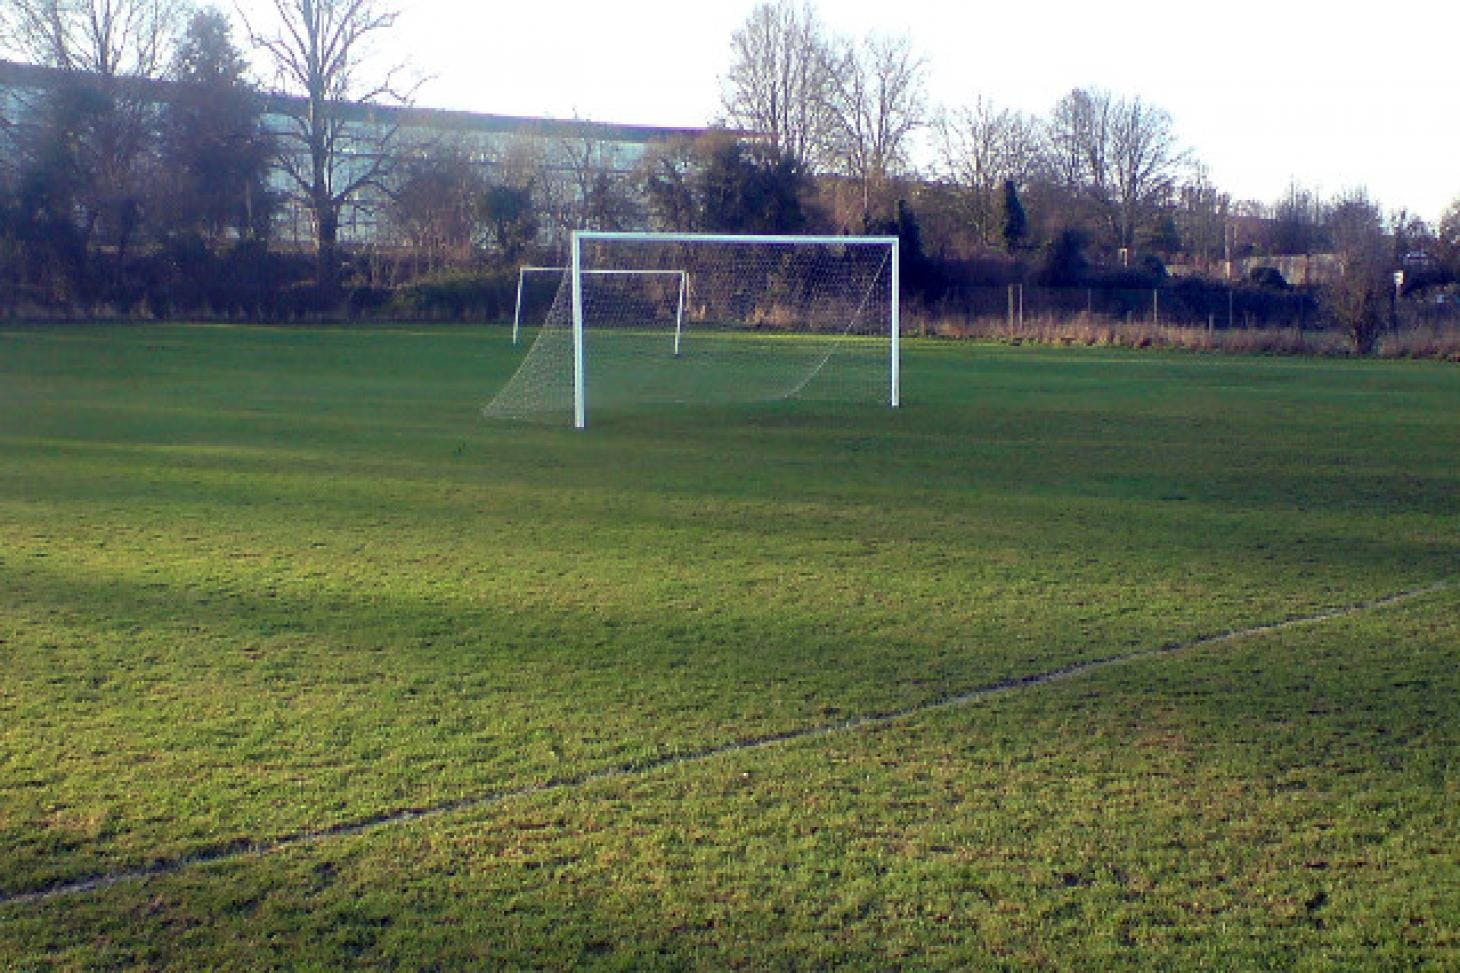 Hurley Recreation Ground 11 a side | Grass football pitch